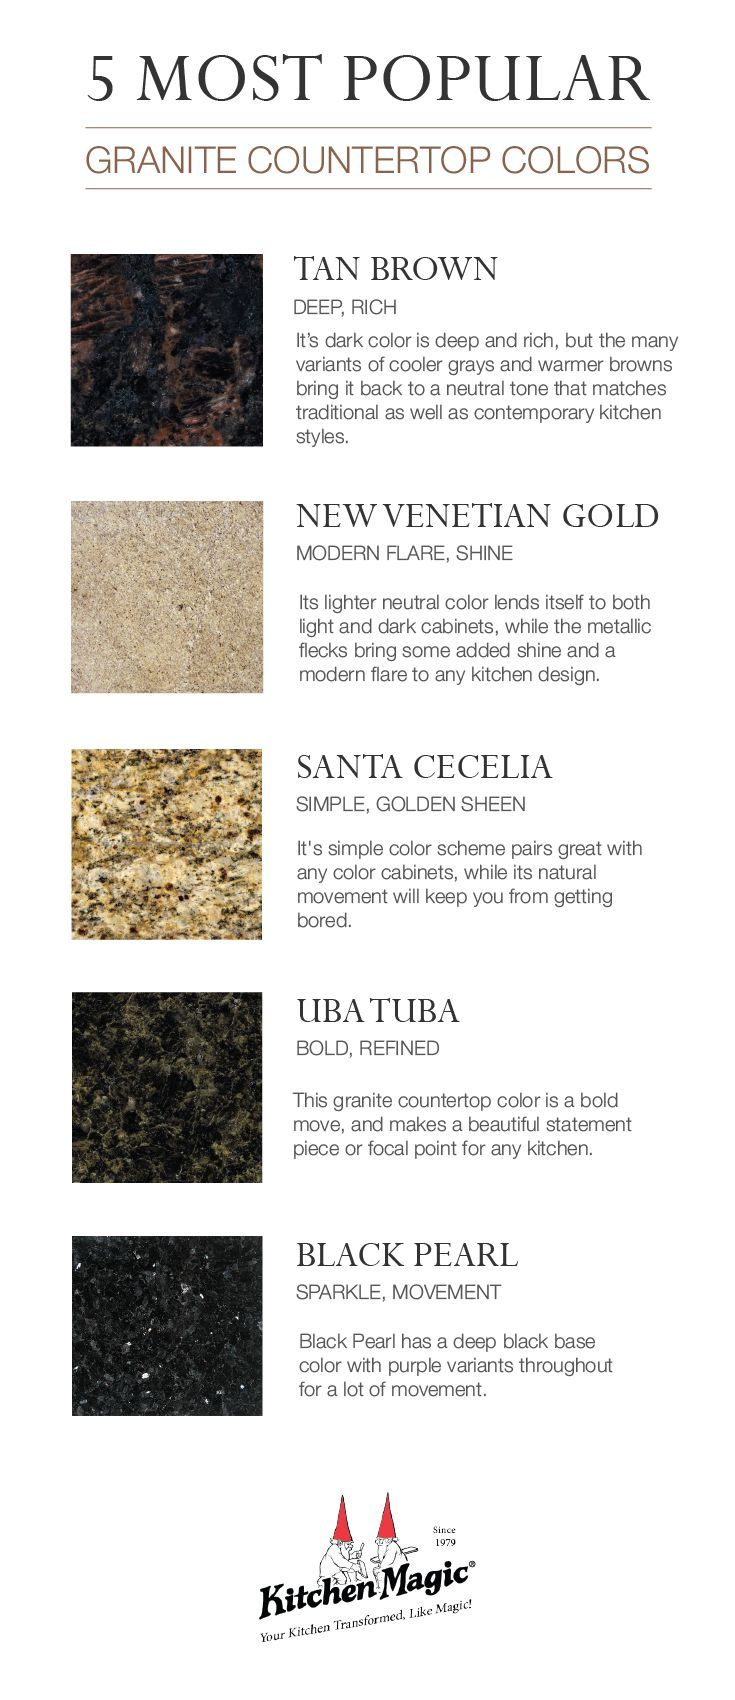 Granite countertops most popular favorite - 5 Most Popular Granite Countertop Colors